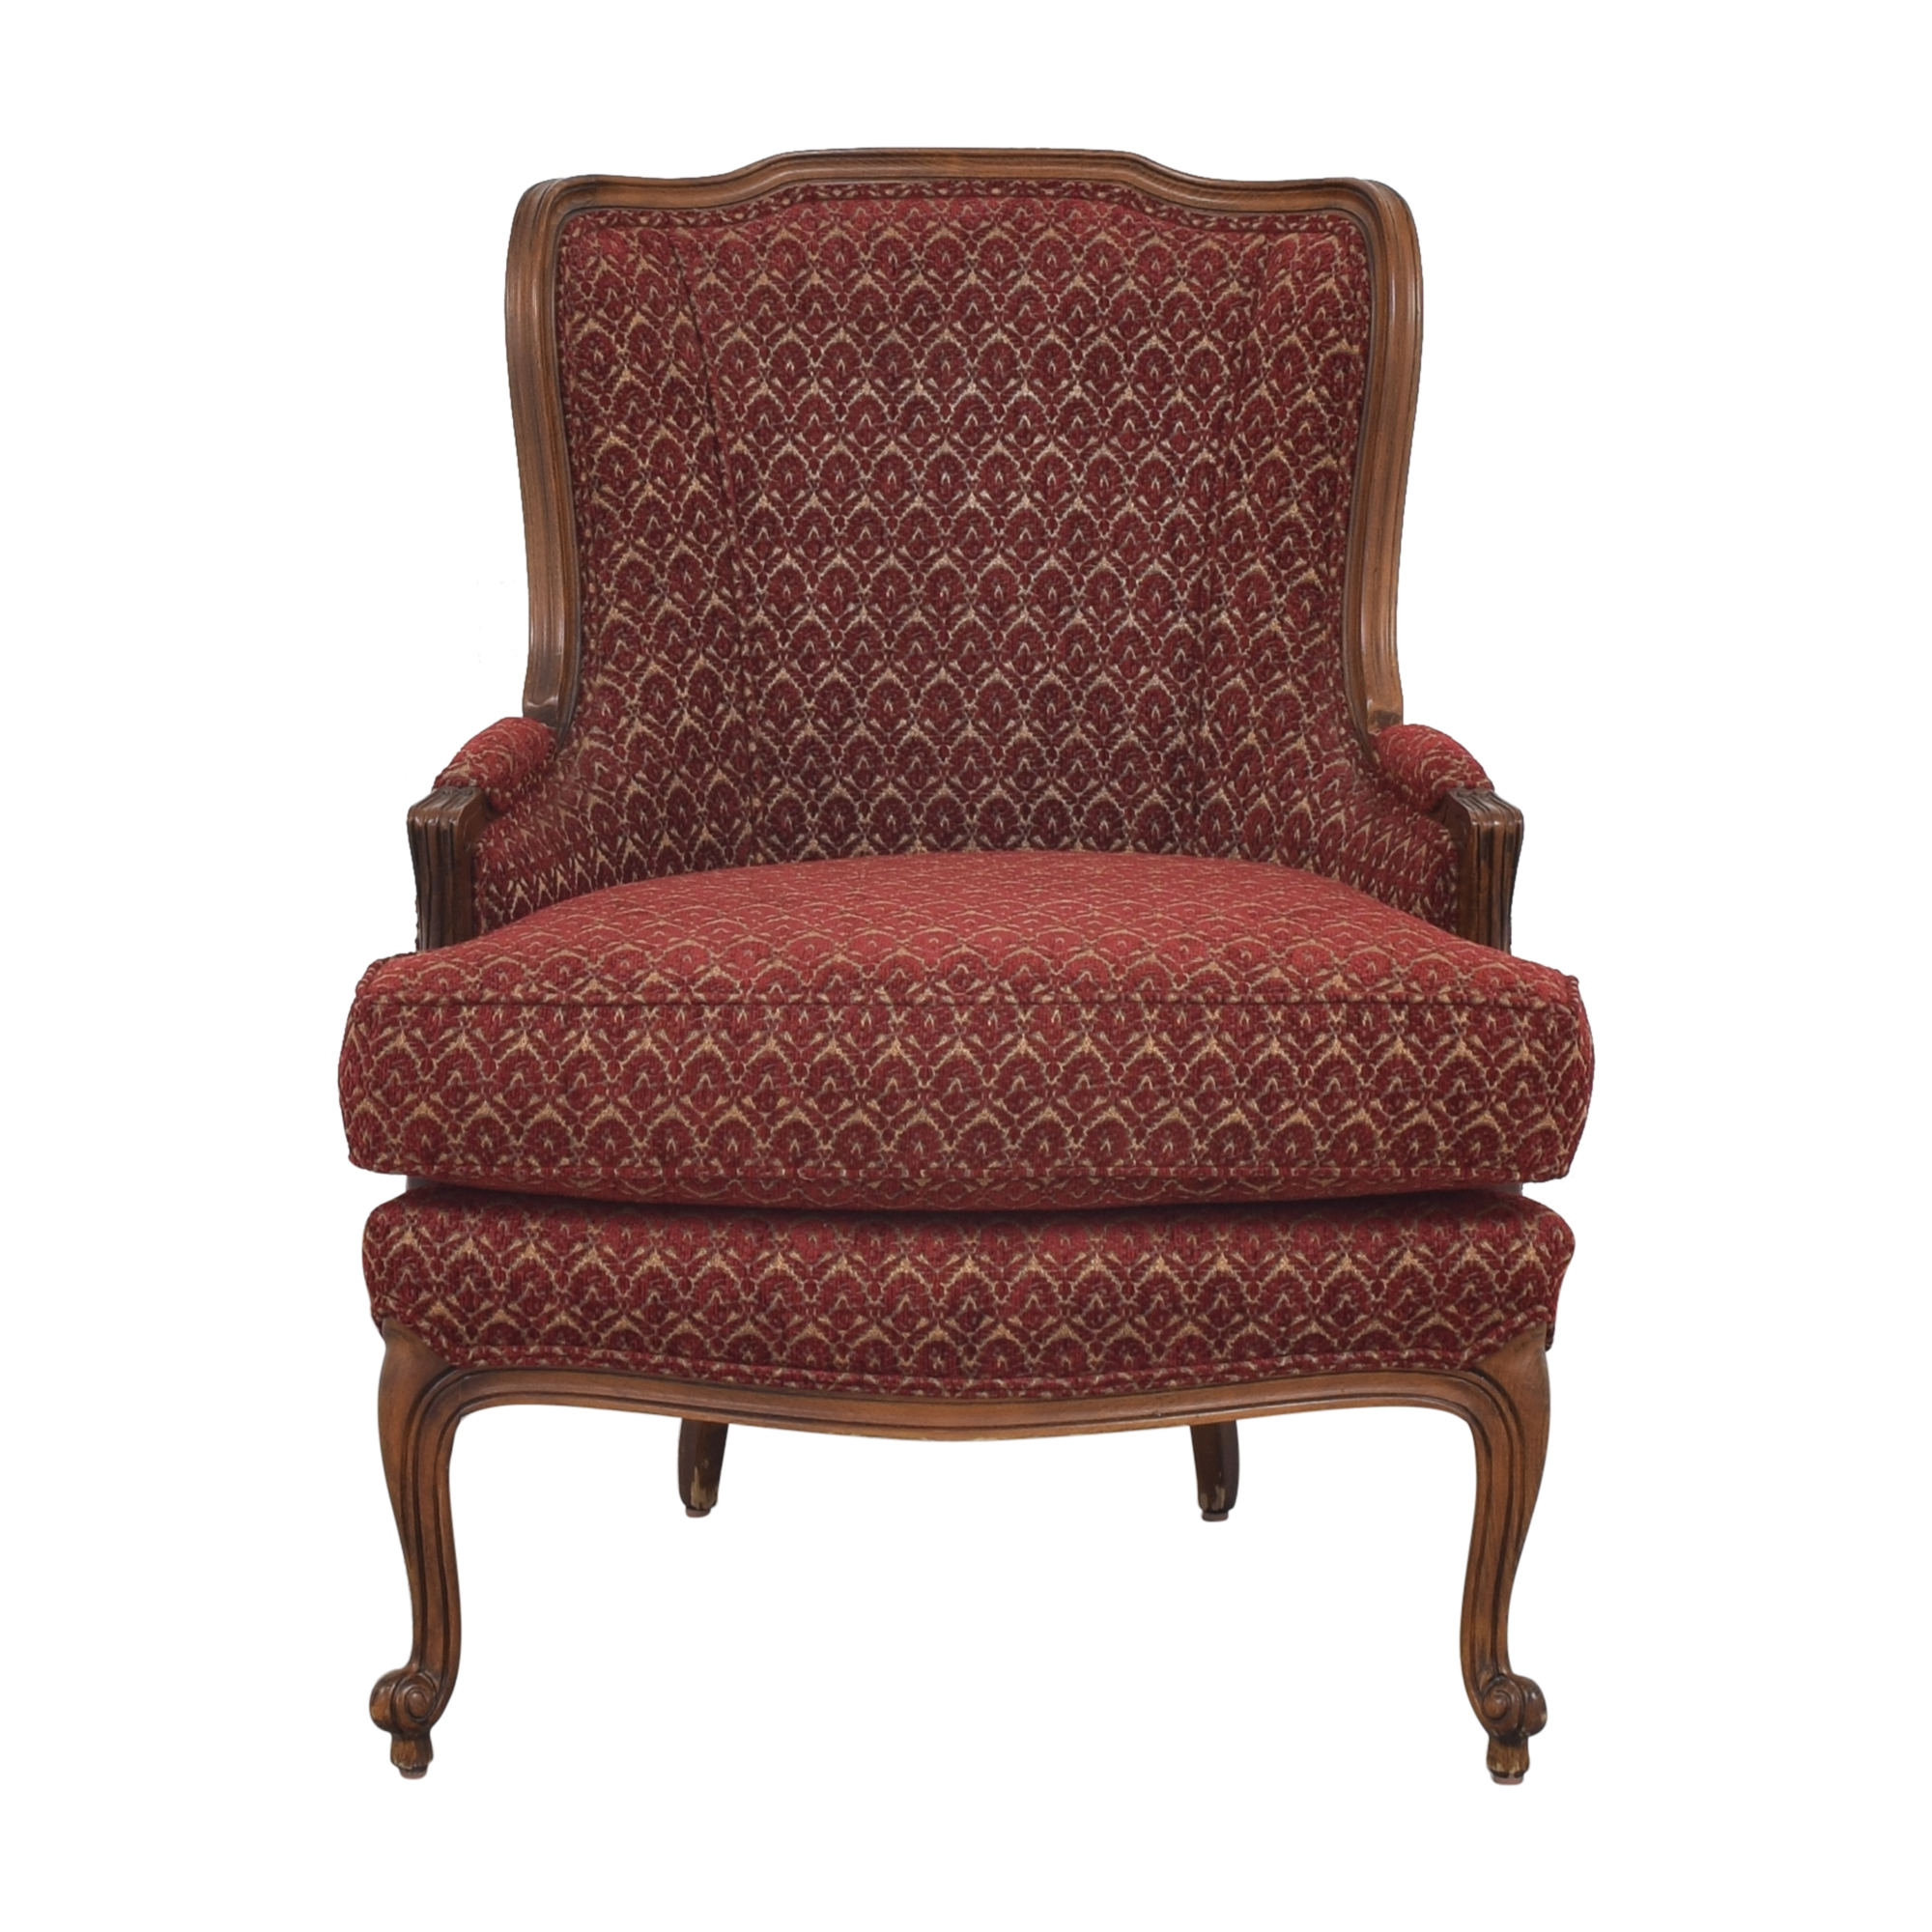 Ethan Allen Ethan Allen Wing Back Accent Chair coupon